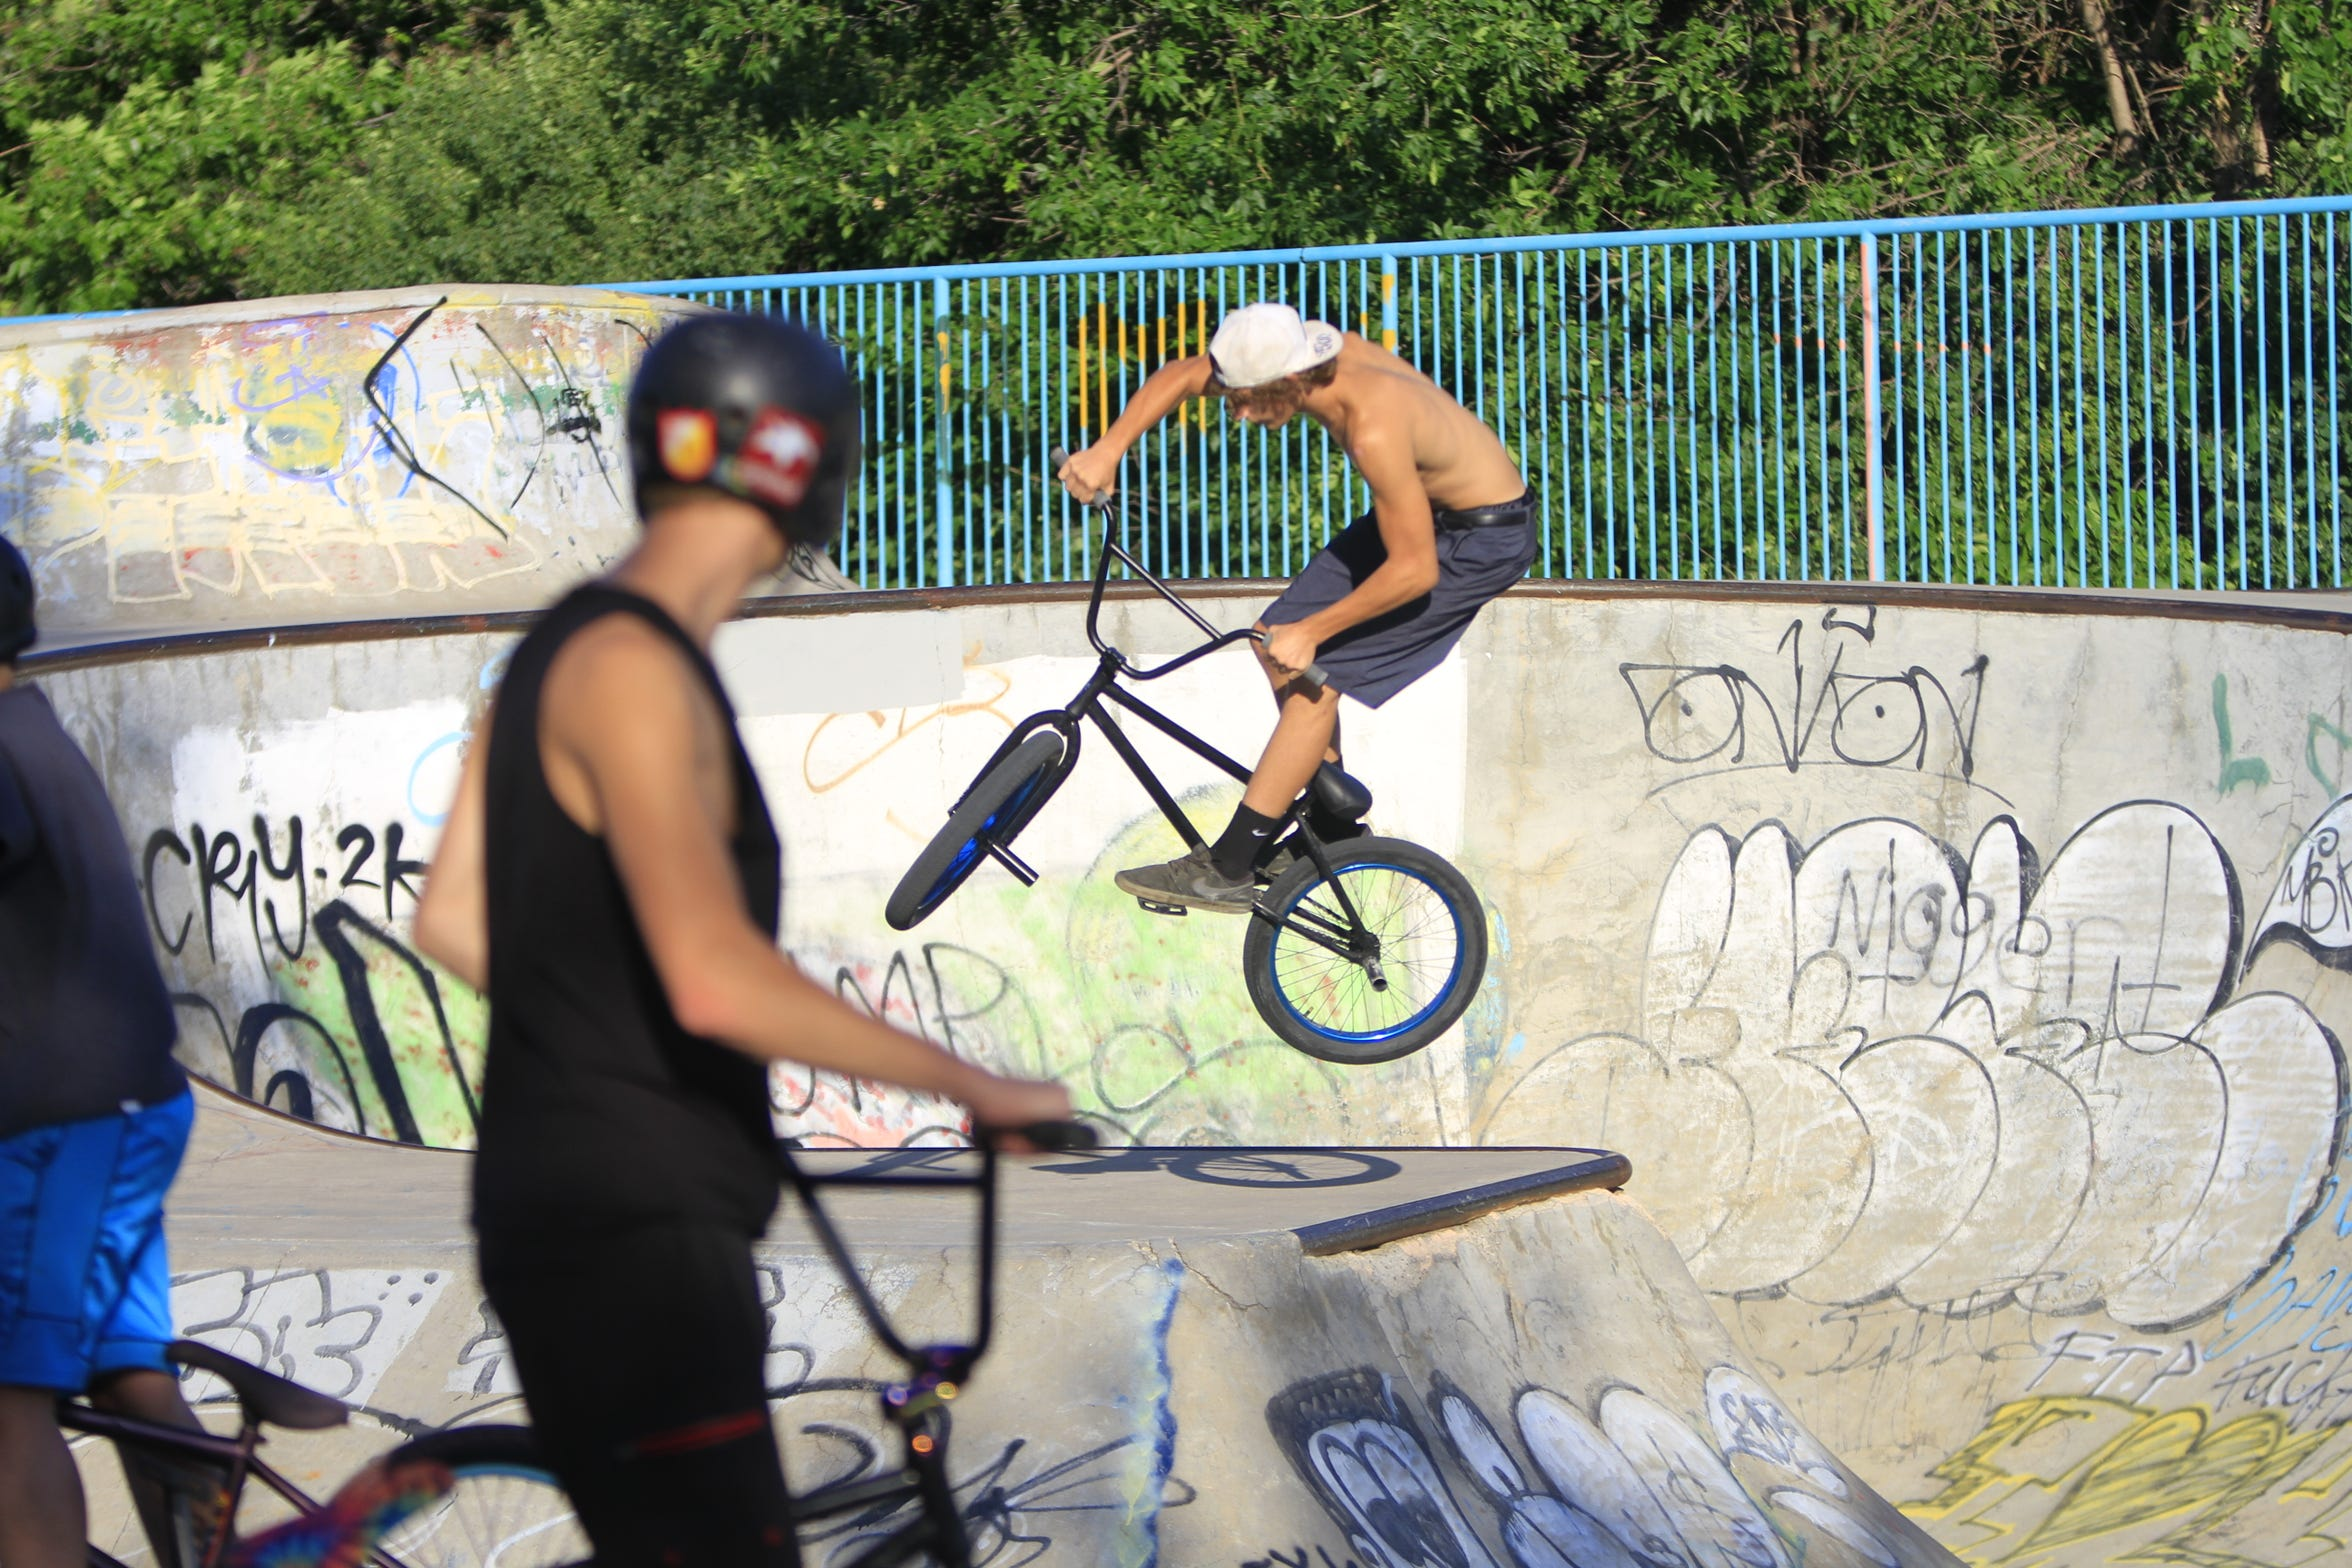 Javaun Srb at riding at Riverside Railyard Skate Park on Thursday evening